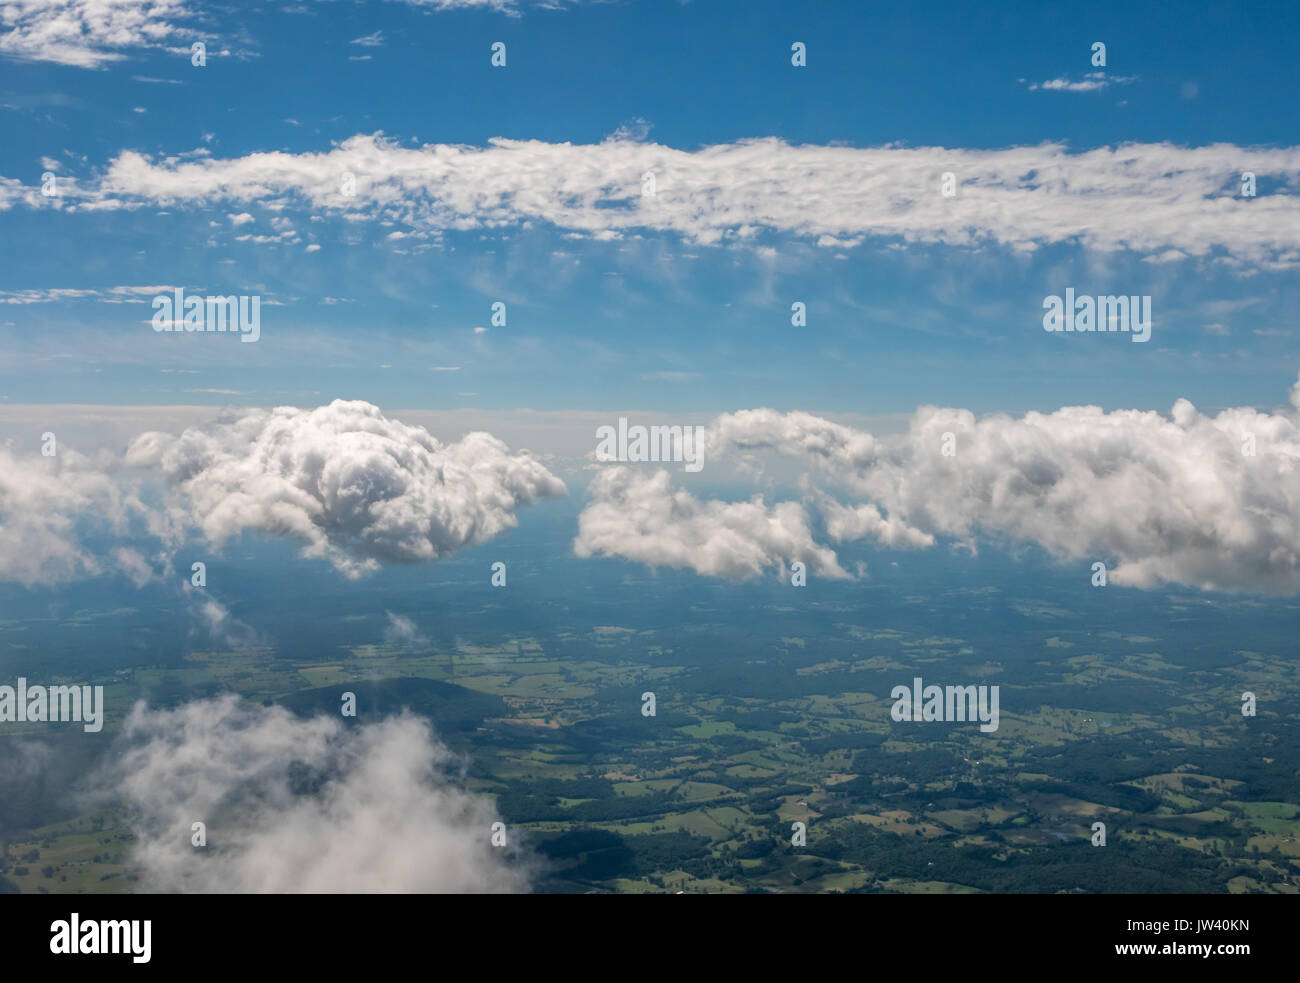 Looking from From Airplane Window Somewhere in Washington State - Stock Image